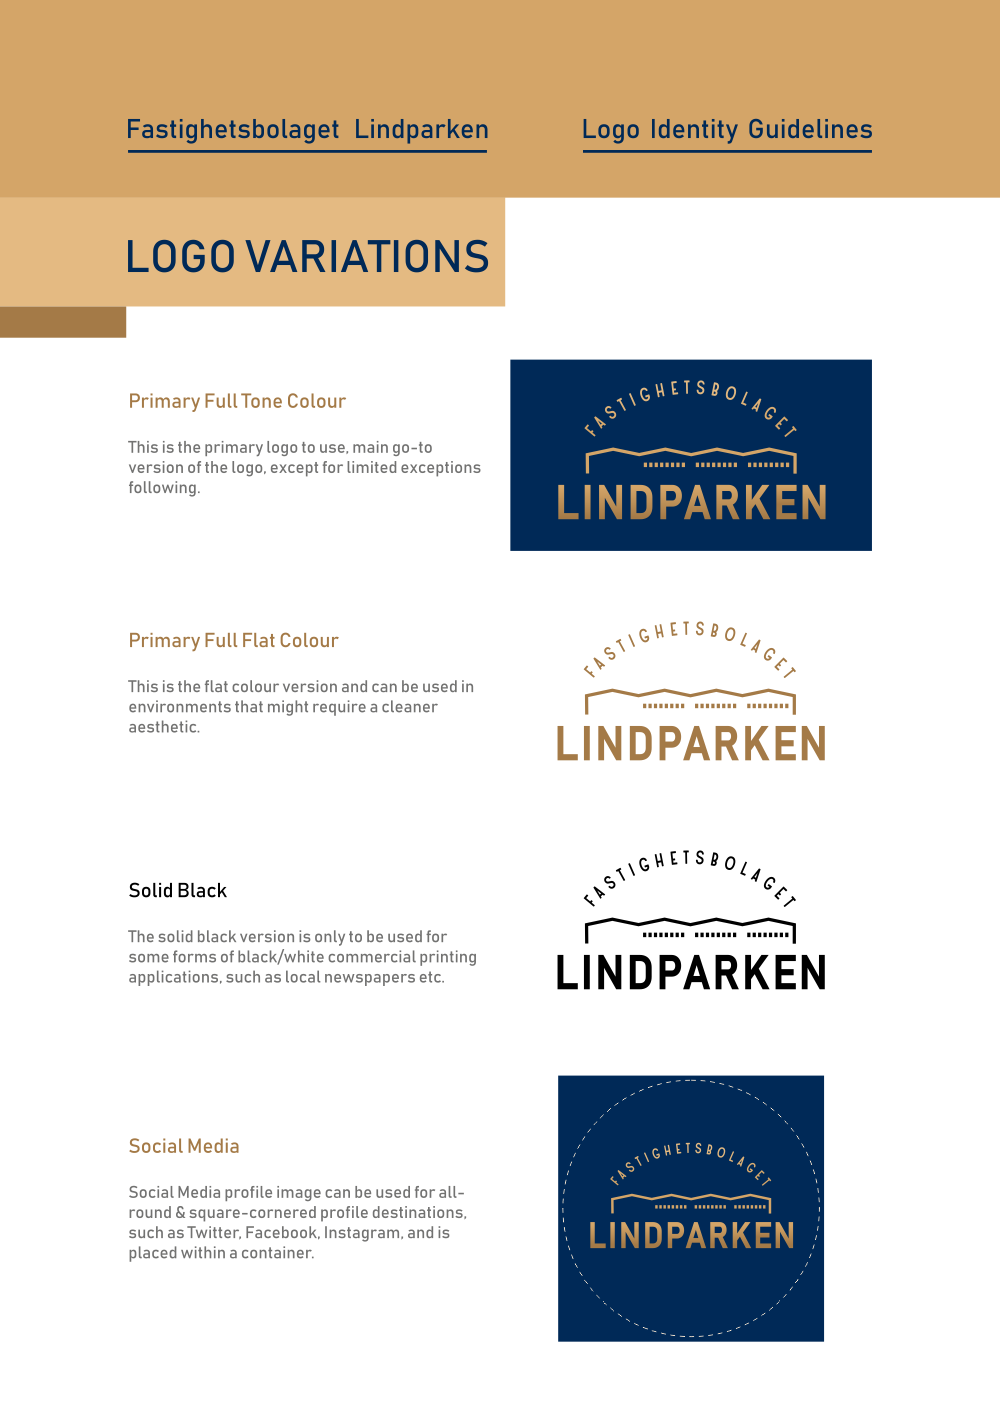 Fastighetsbolaget Lindparken-Visual-Identity-Guide-by-Lanagraphic-2